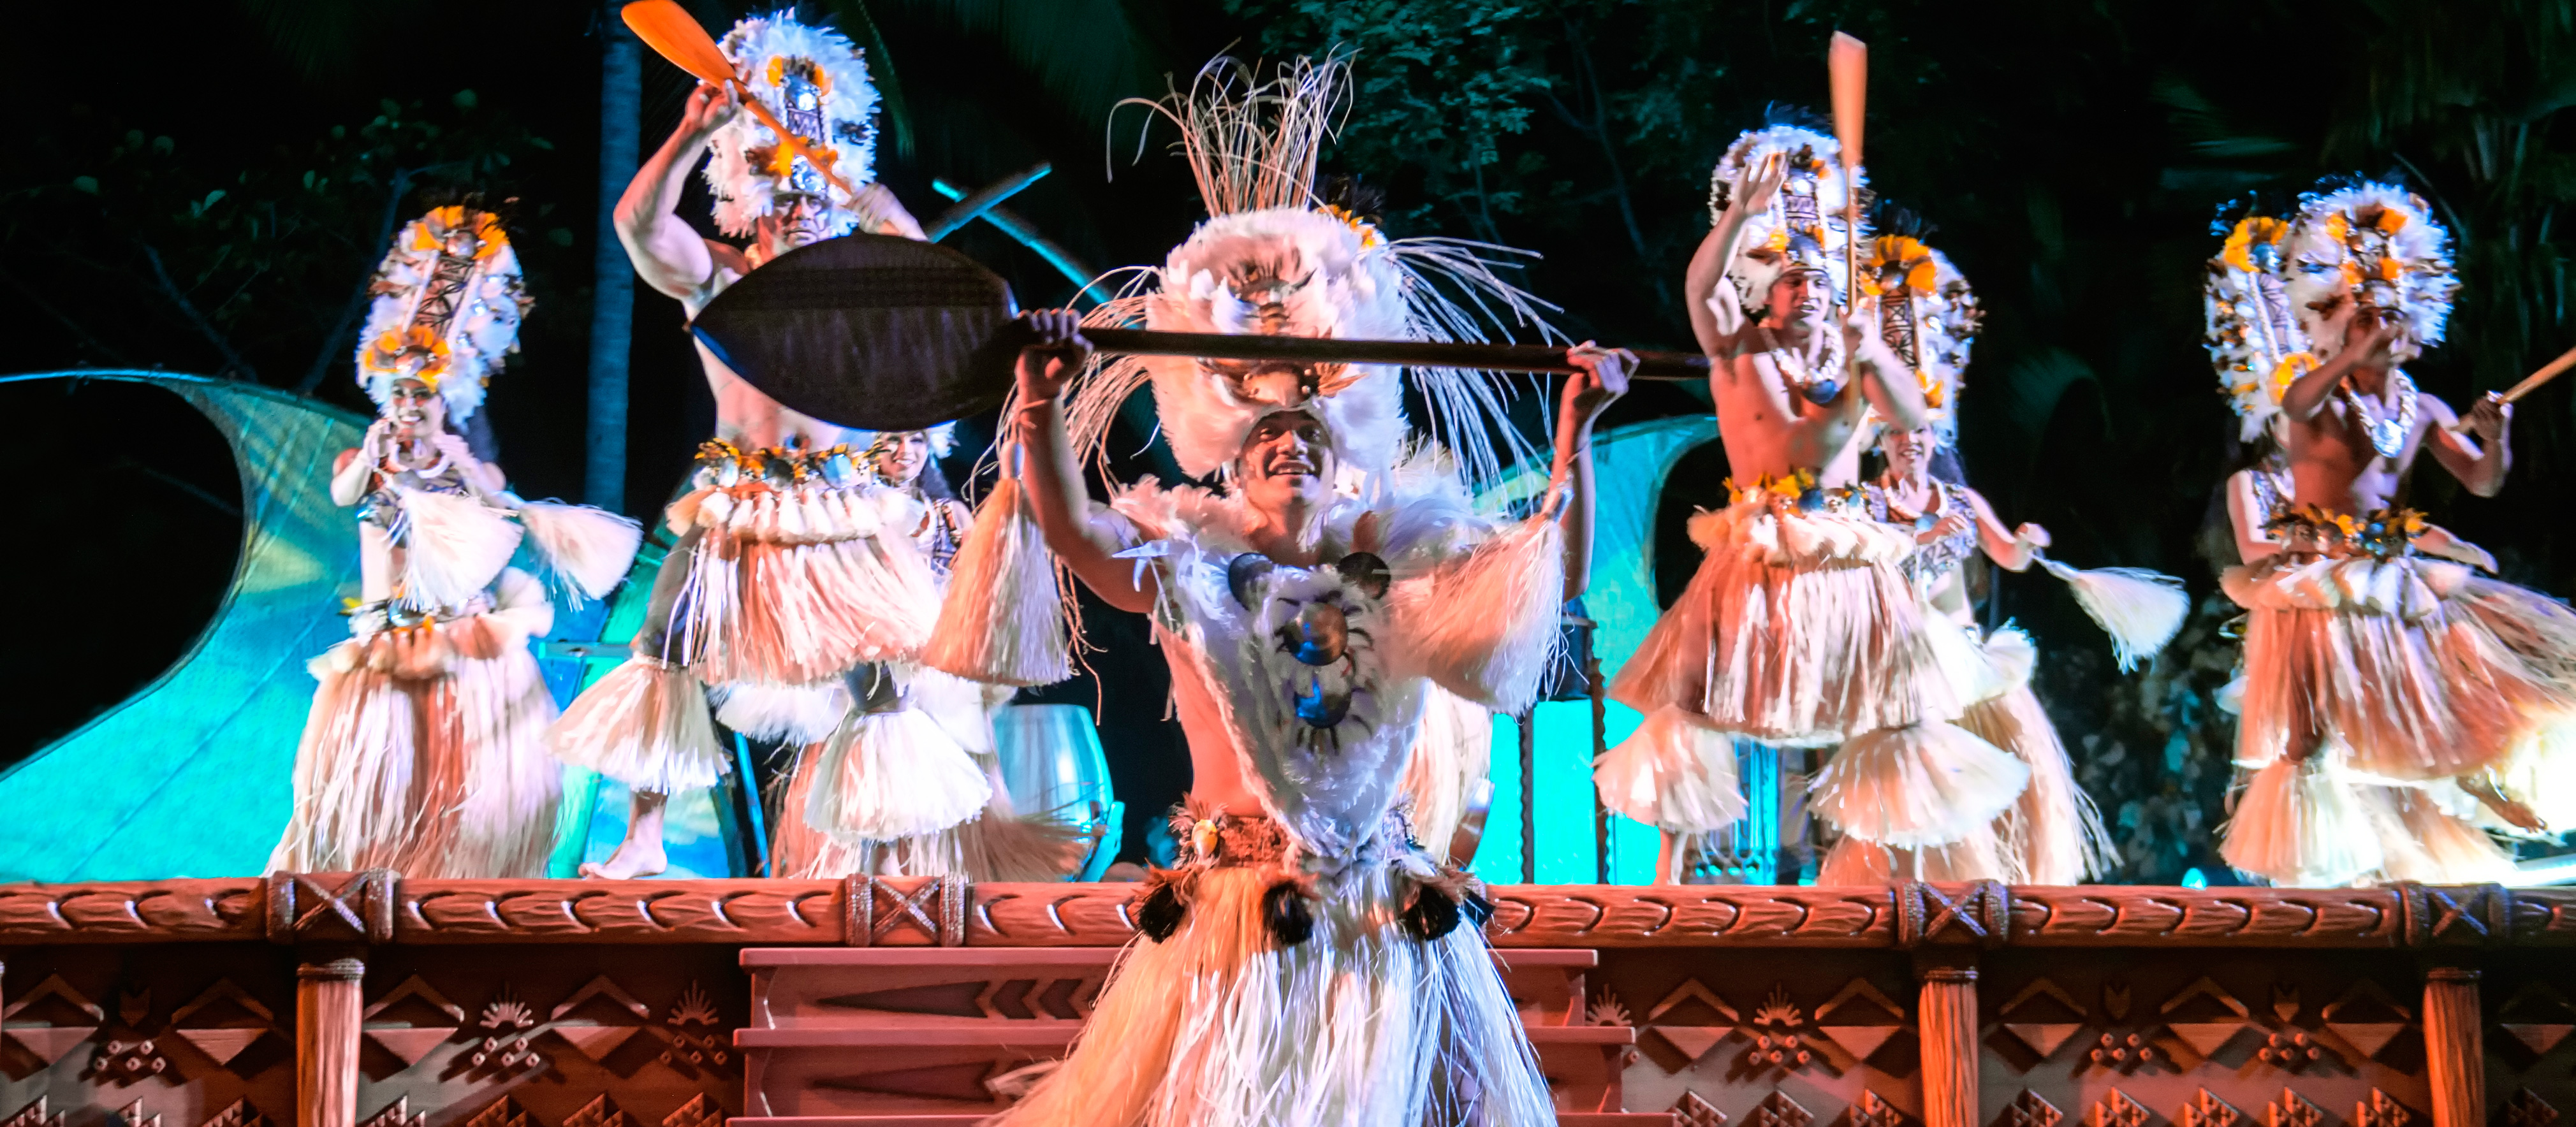 Male dancers in ornate Hawaiian grass skirts perform a traditional dance using oars.